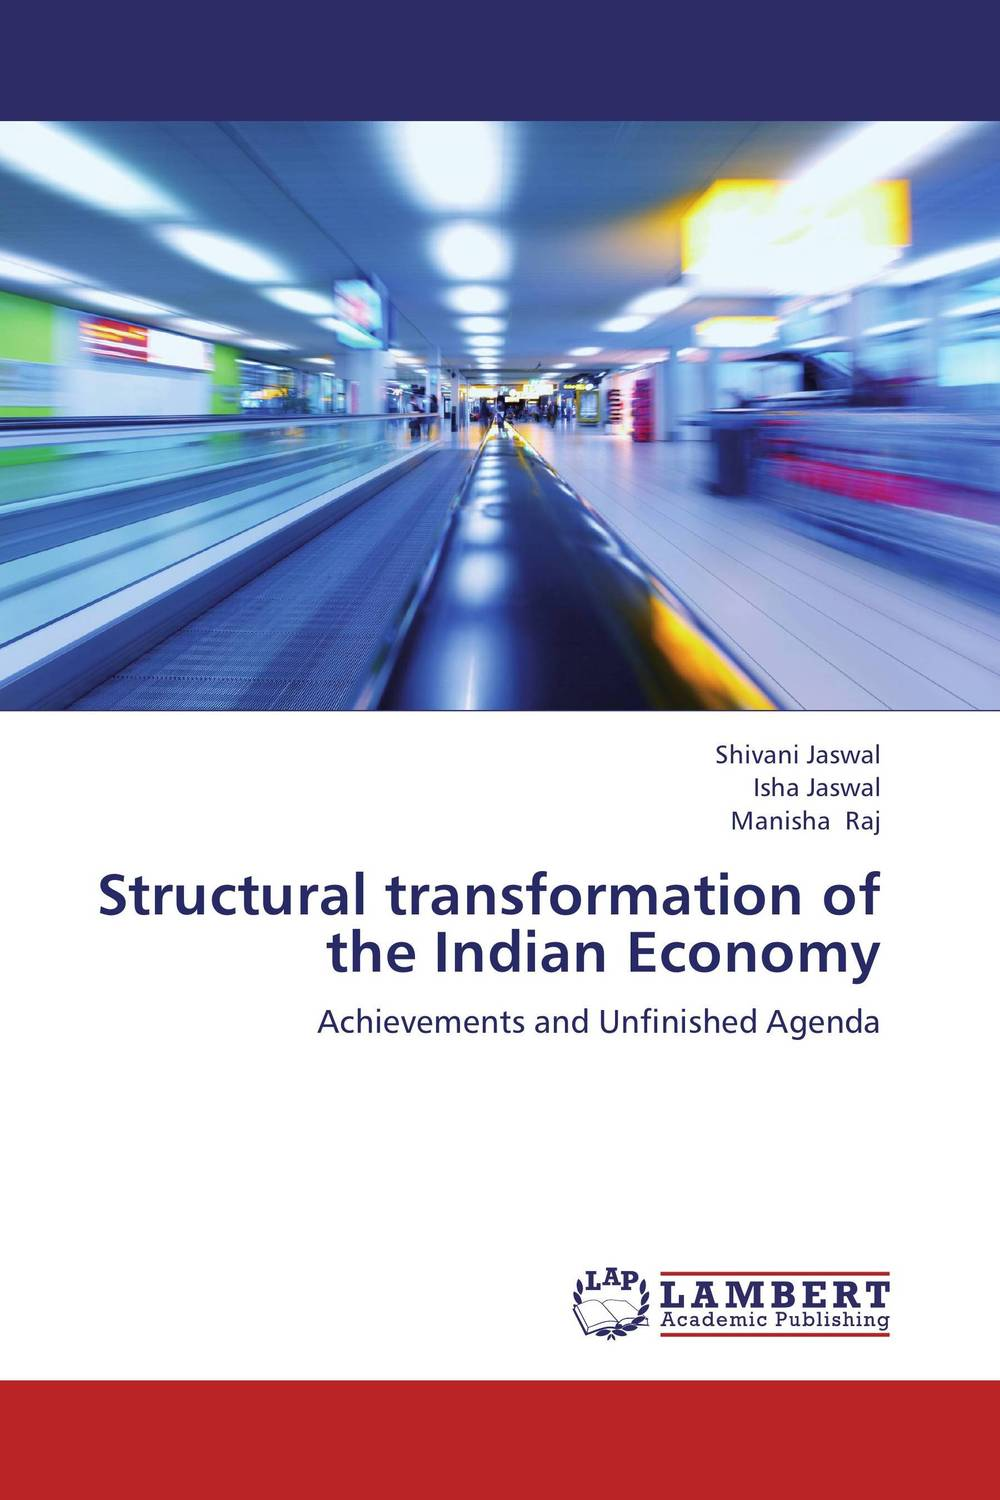 Structural transformation of the Indian Economy